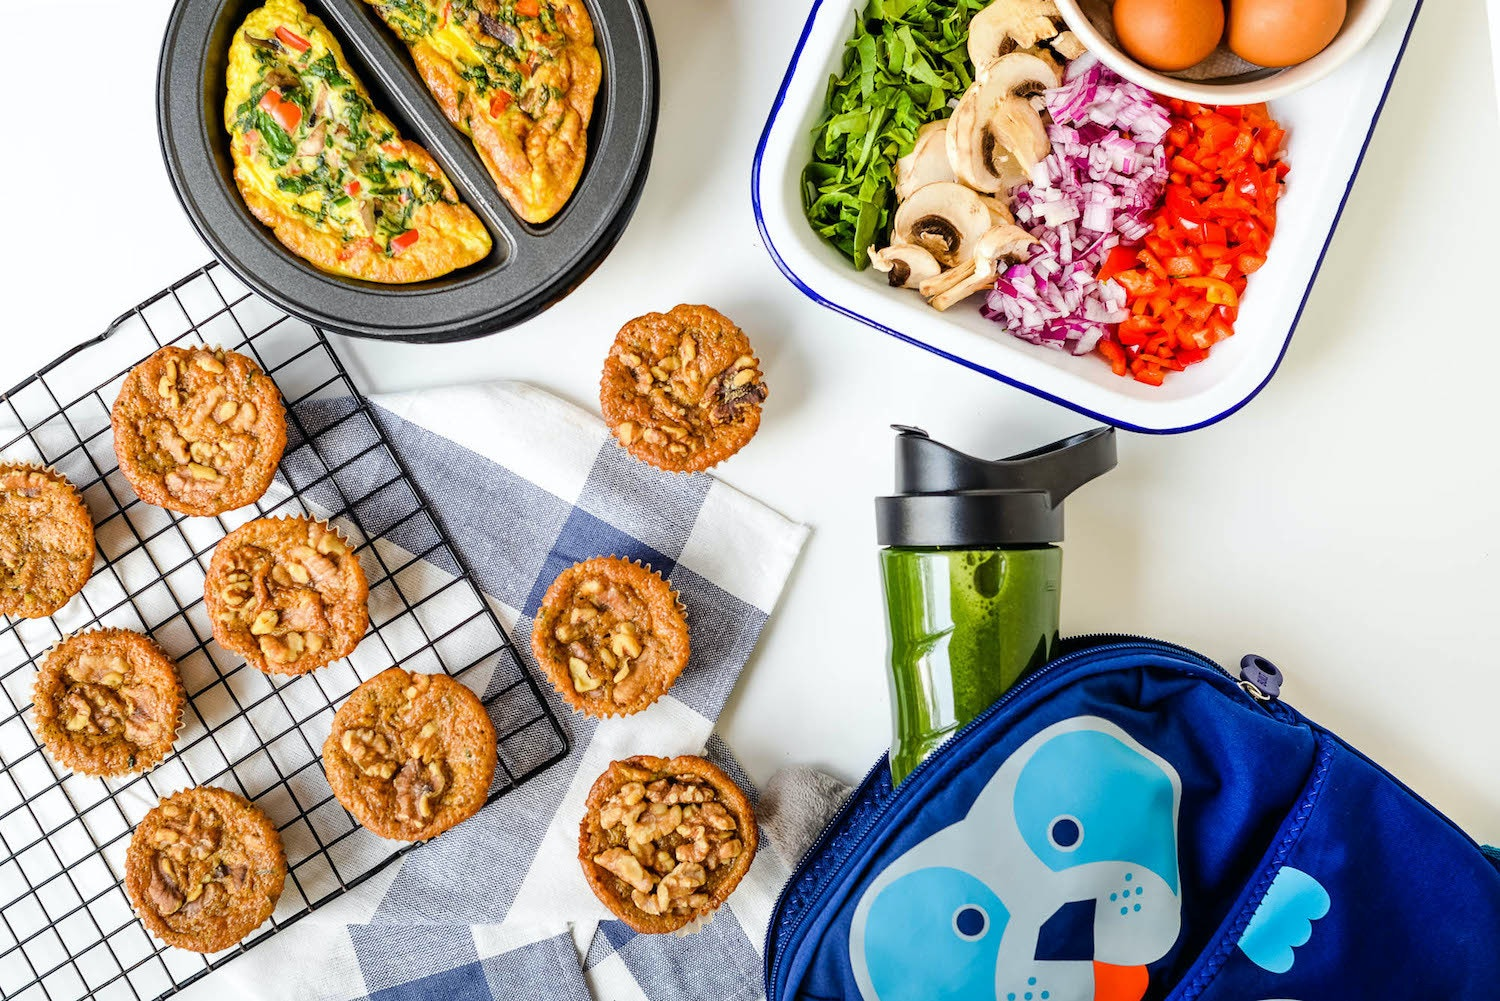 Get a Healthy Start with these Veggie-Packed Grab-And-Go Breakfast Ideas